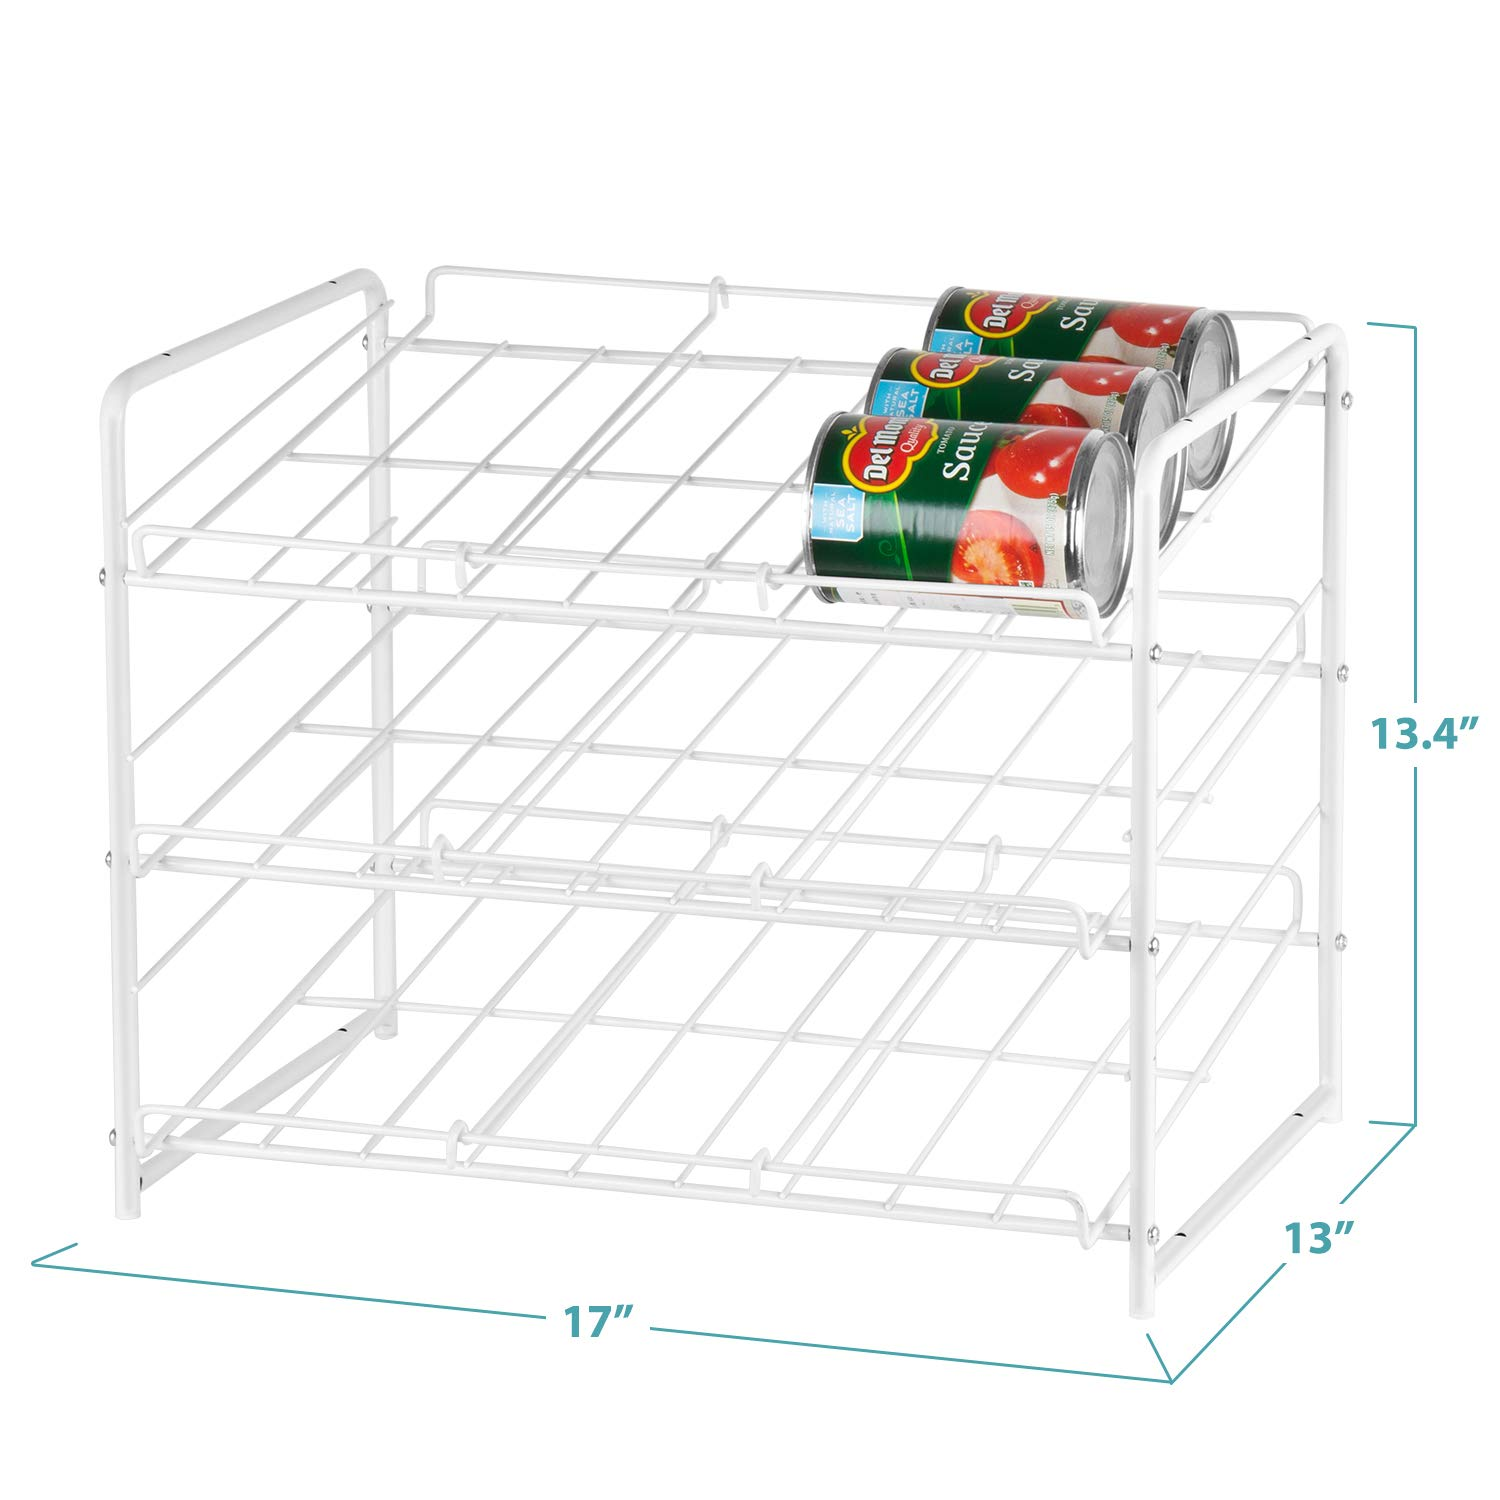 Pantry Organization And Storage Dispenser Holds 36 Soda Cans Or Canned Food Metal White Bextsware Stackable Can Rack Organizer For Kitchen Cabinet